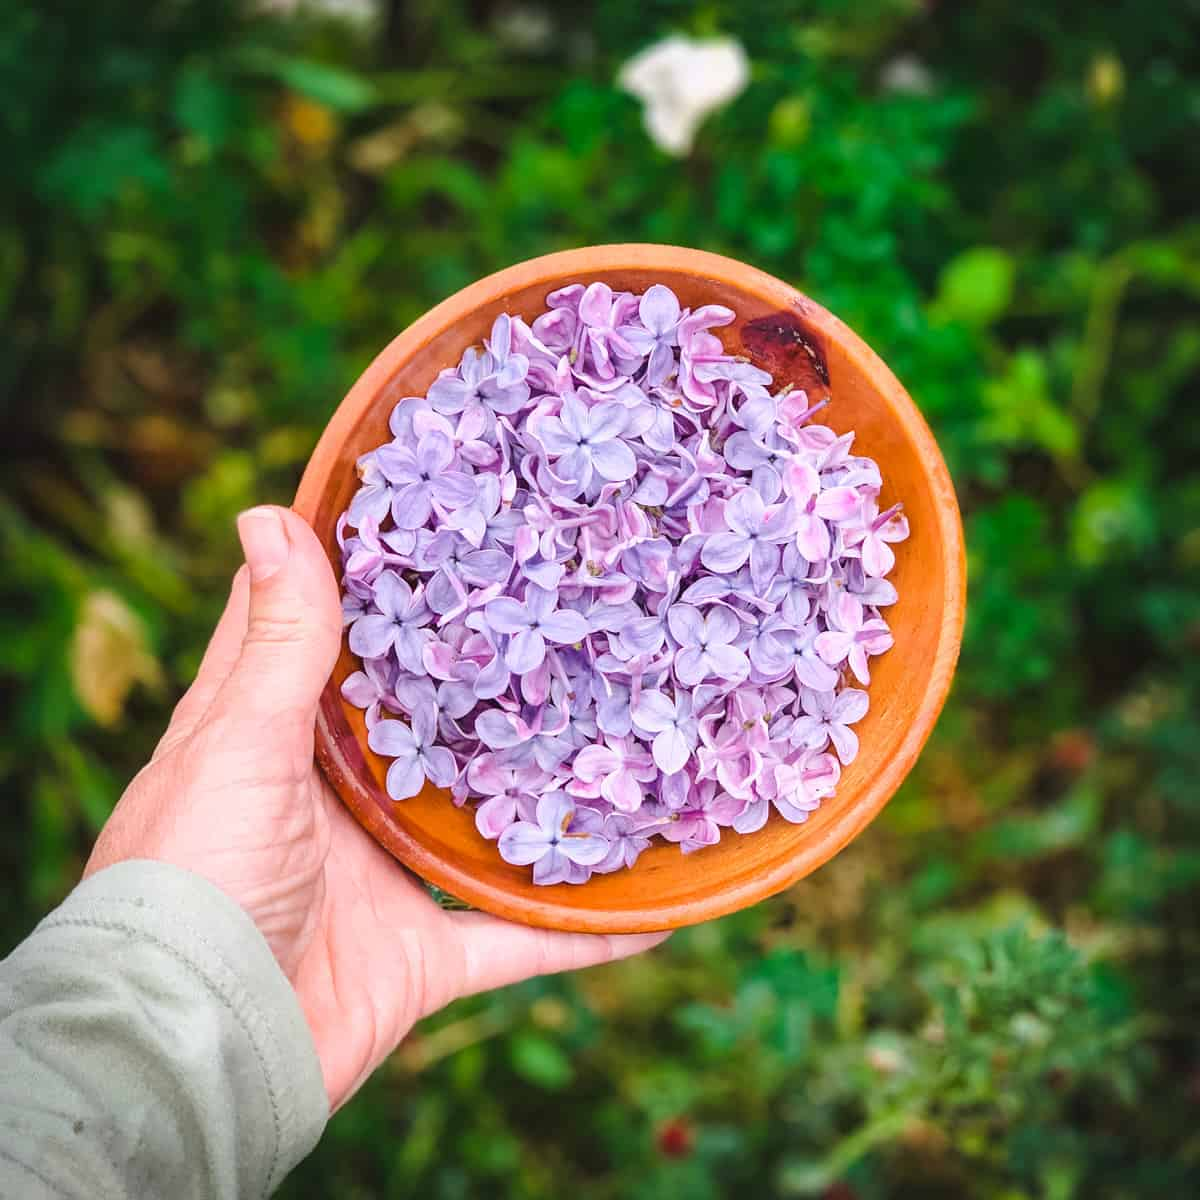 a hand holding a bowl of freshly picked lilac flowers